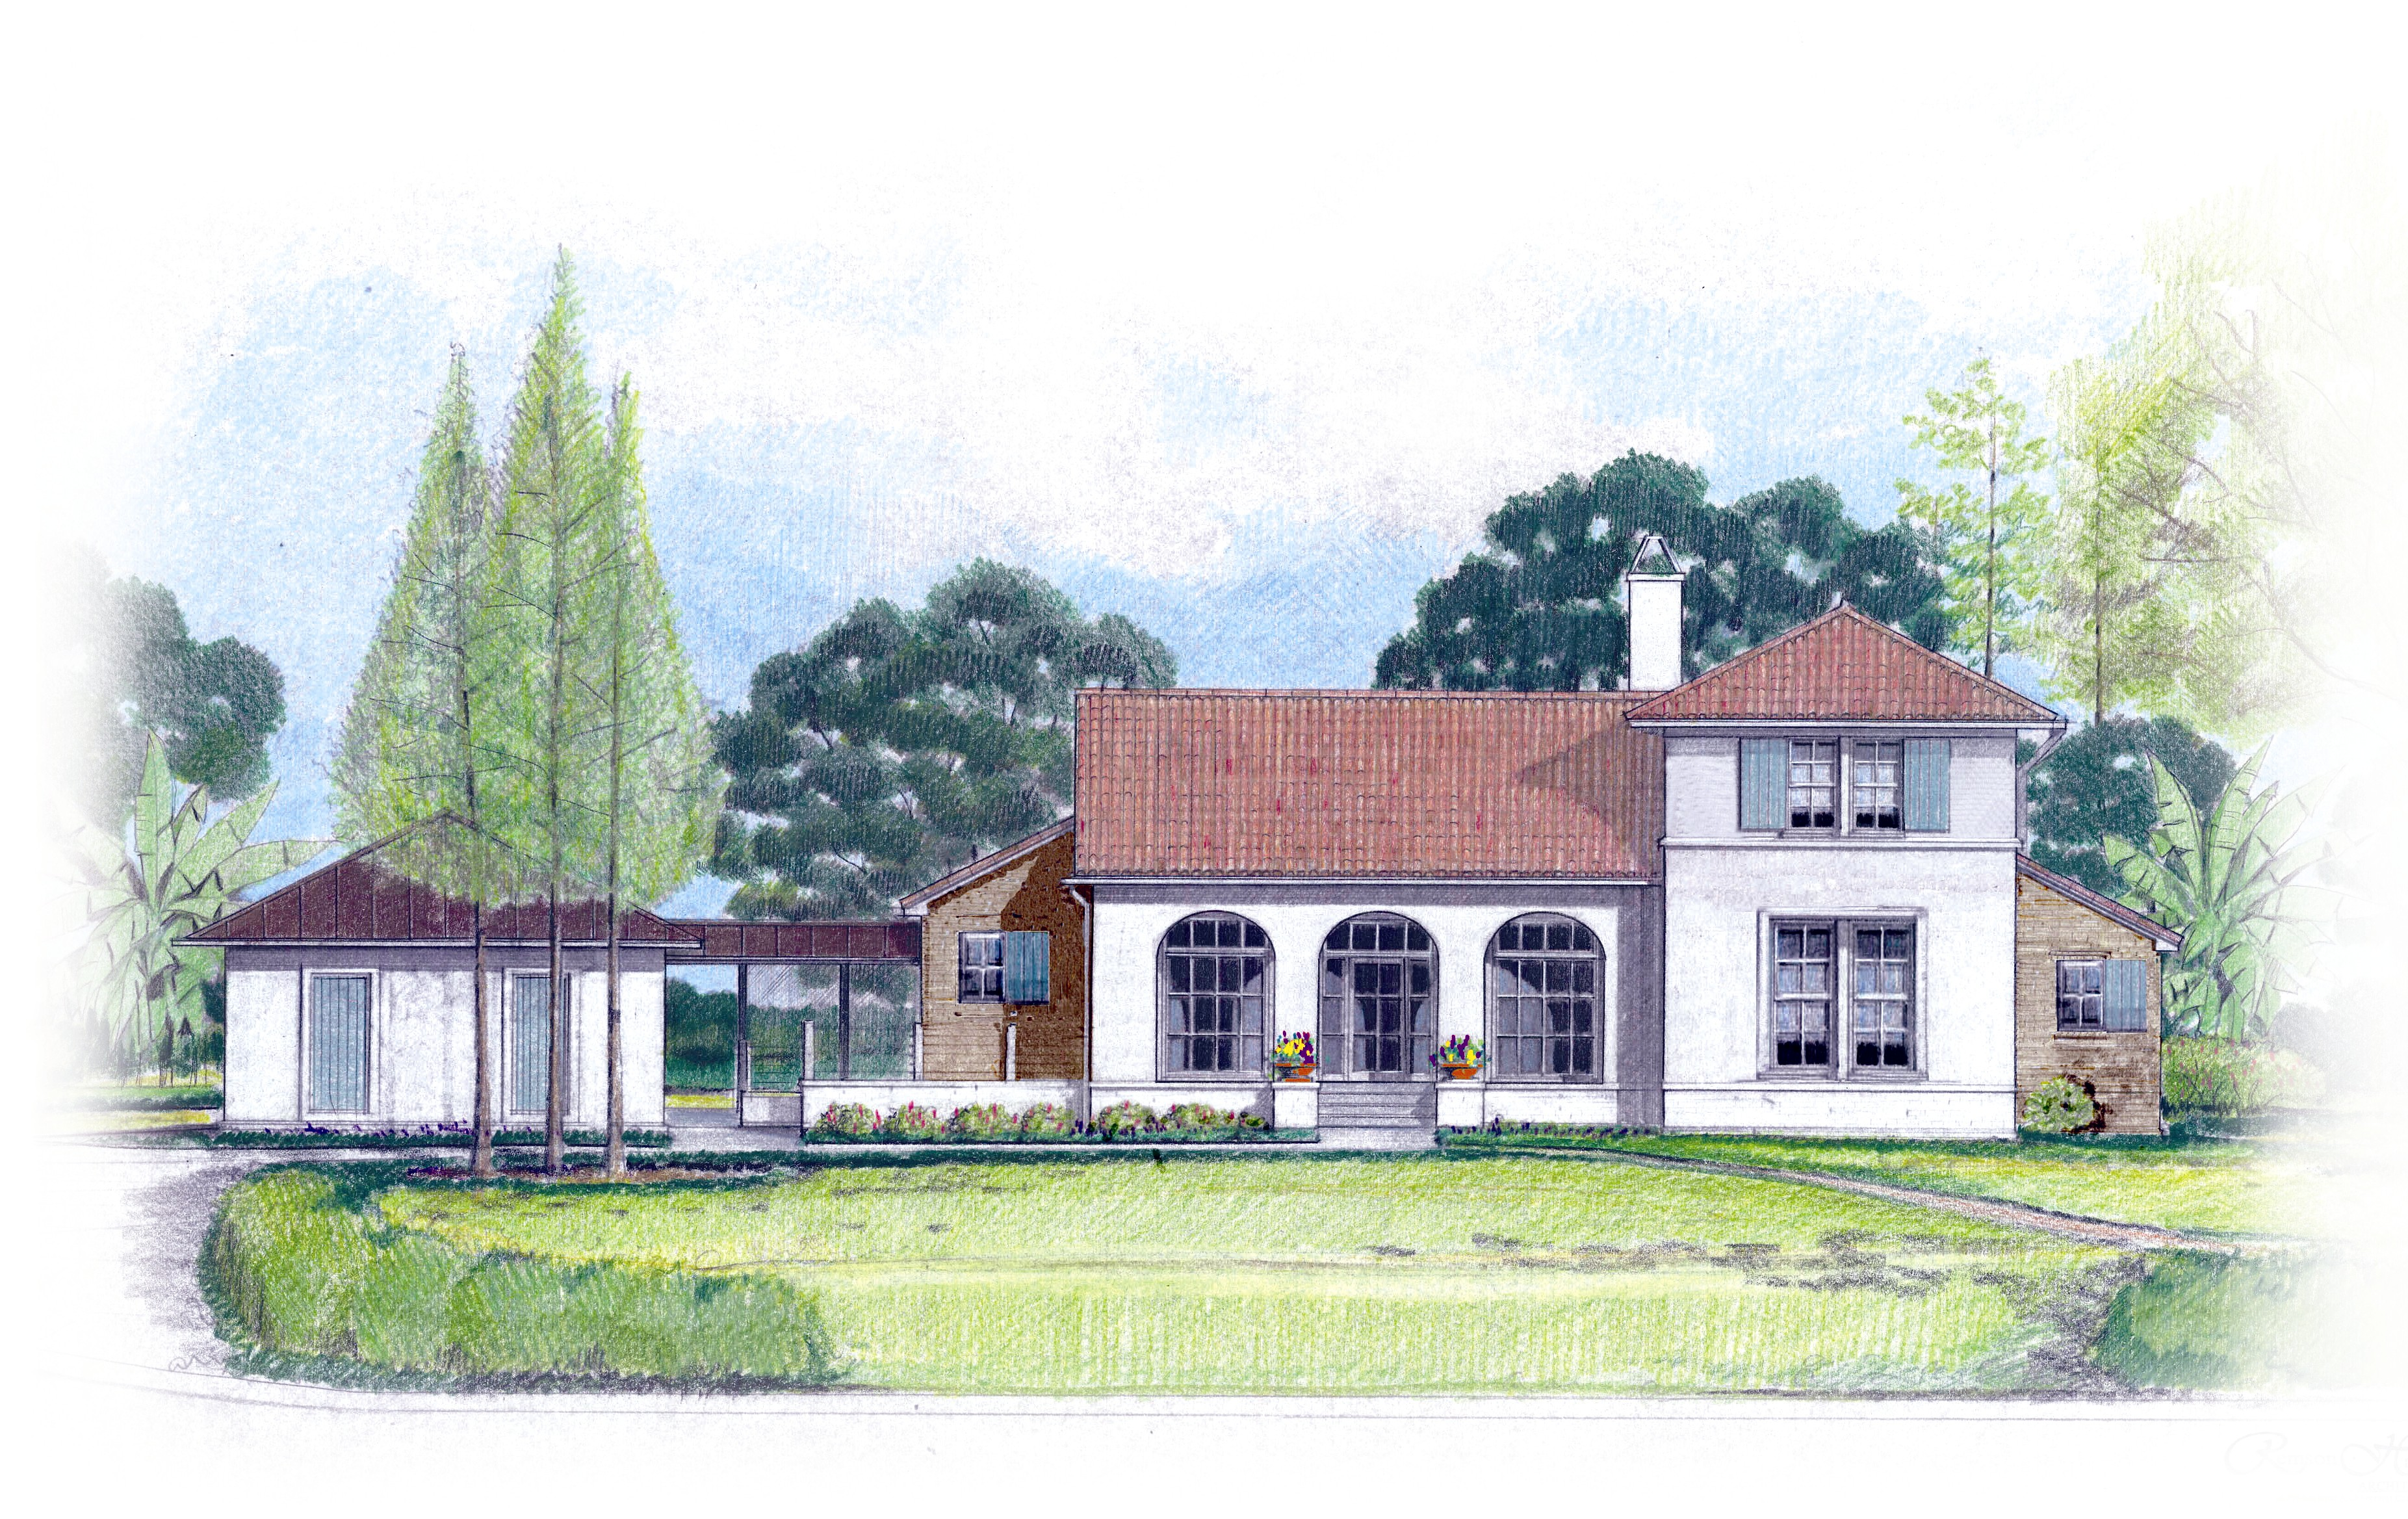 LaHouse Rendering - Summer 2007